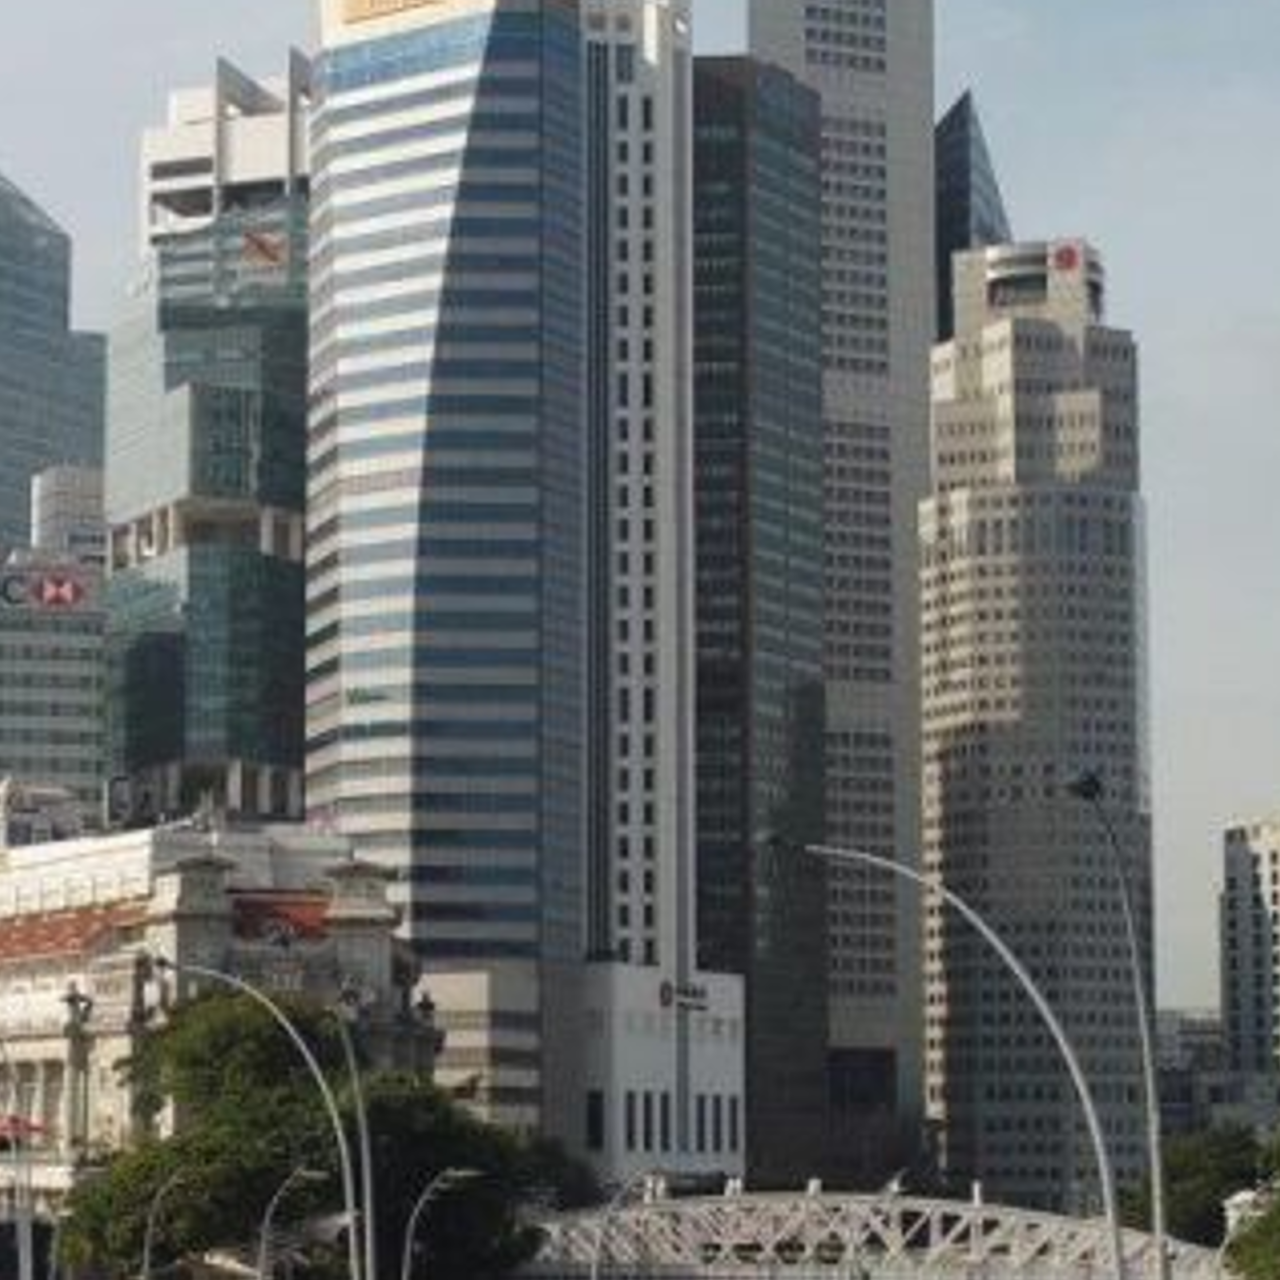 Oil, bribes, politicians: what happened to 'clean' Singapore